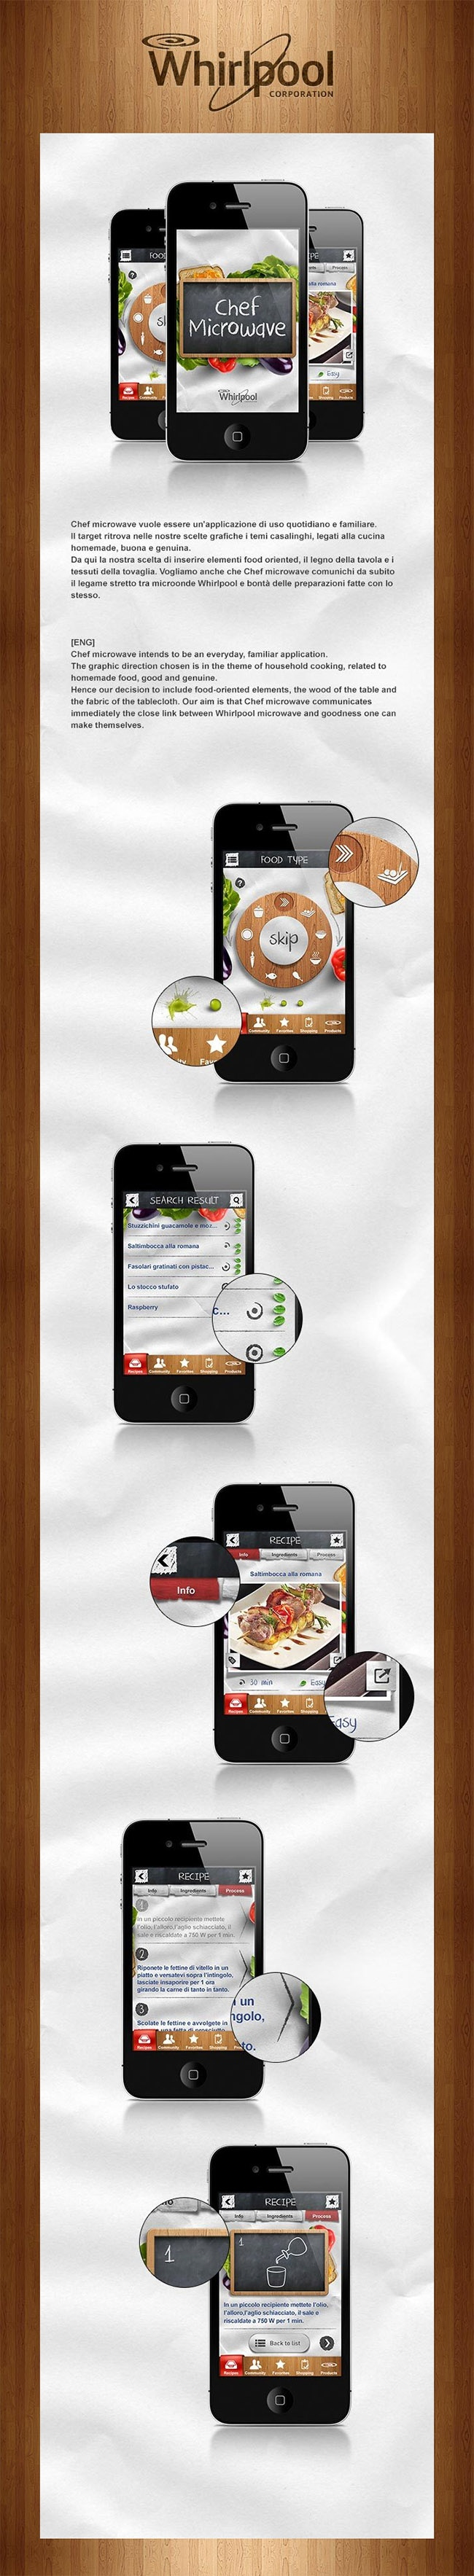 best images about web apps app design app chef microwave whirlpool app by santi urso via behance proposal design